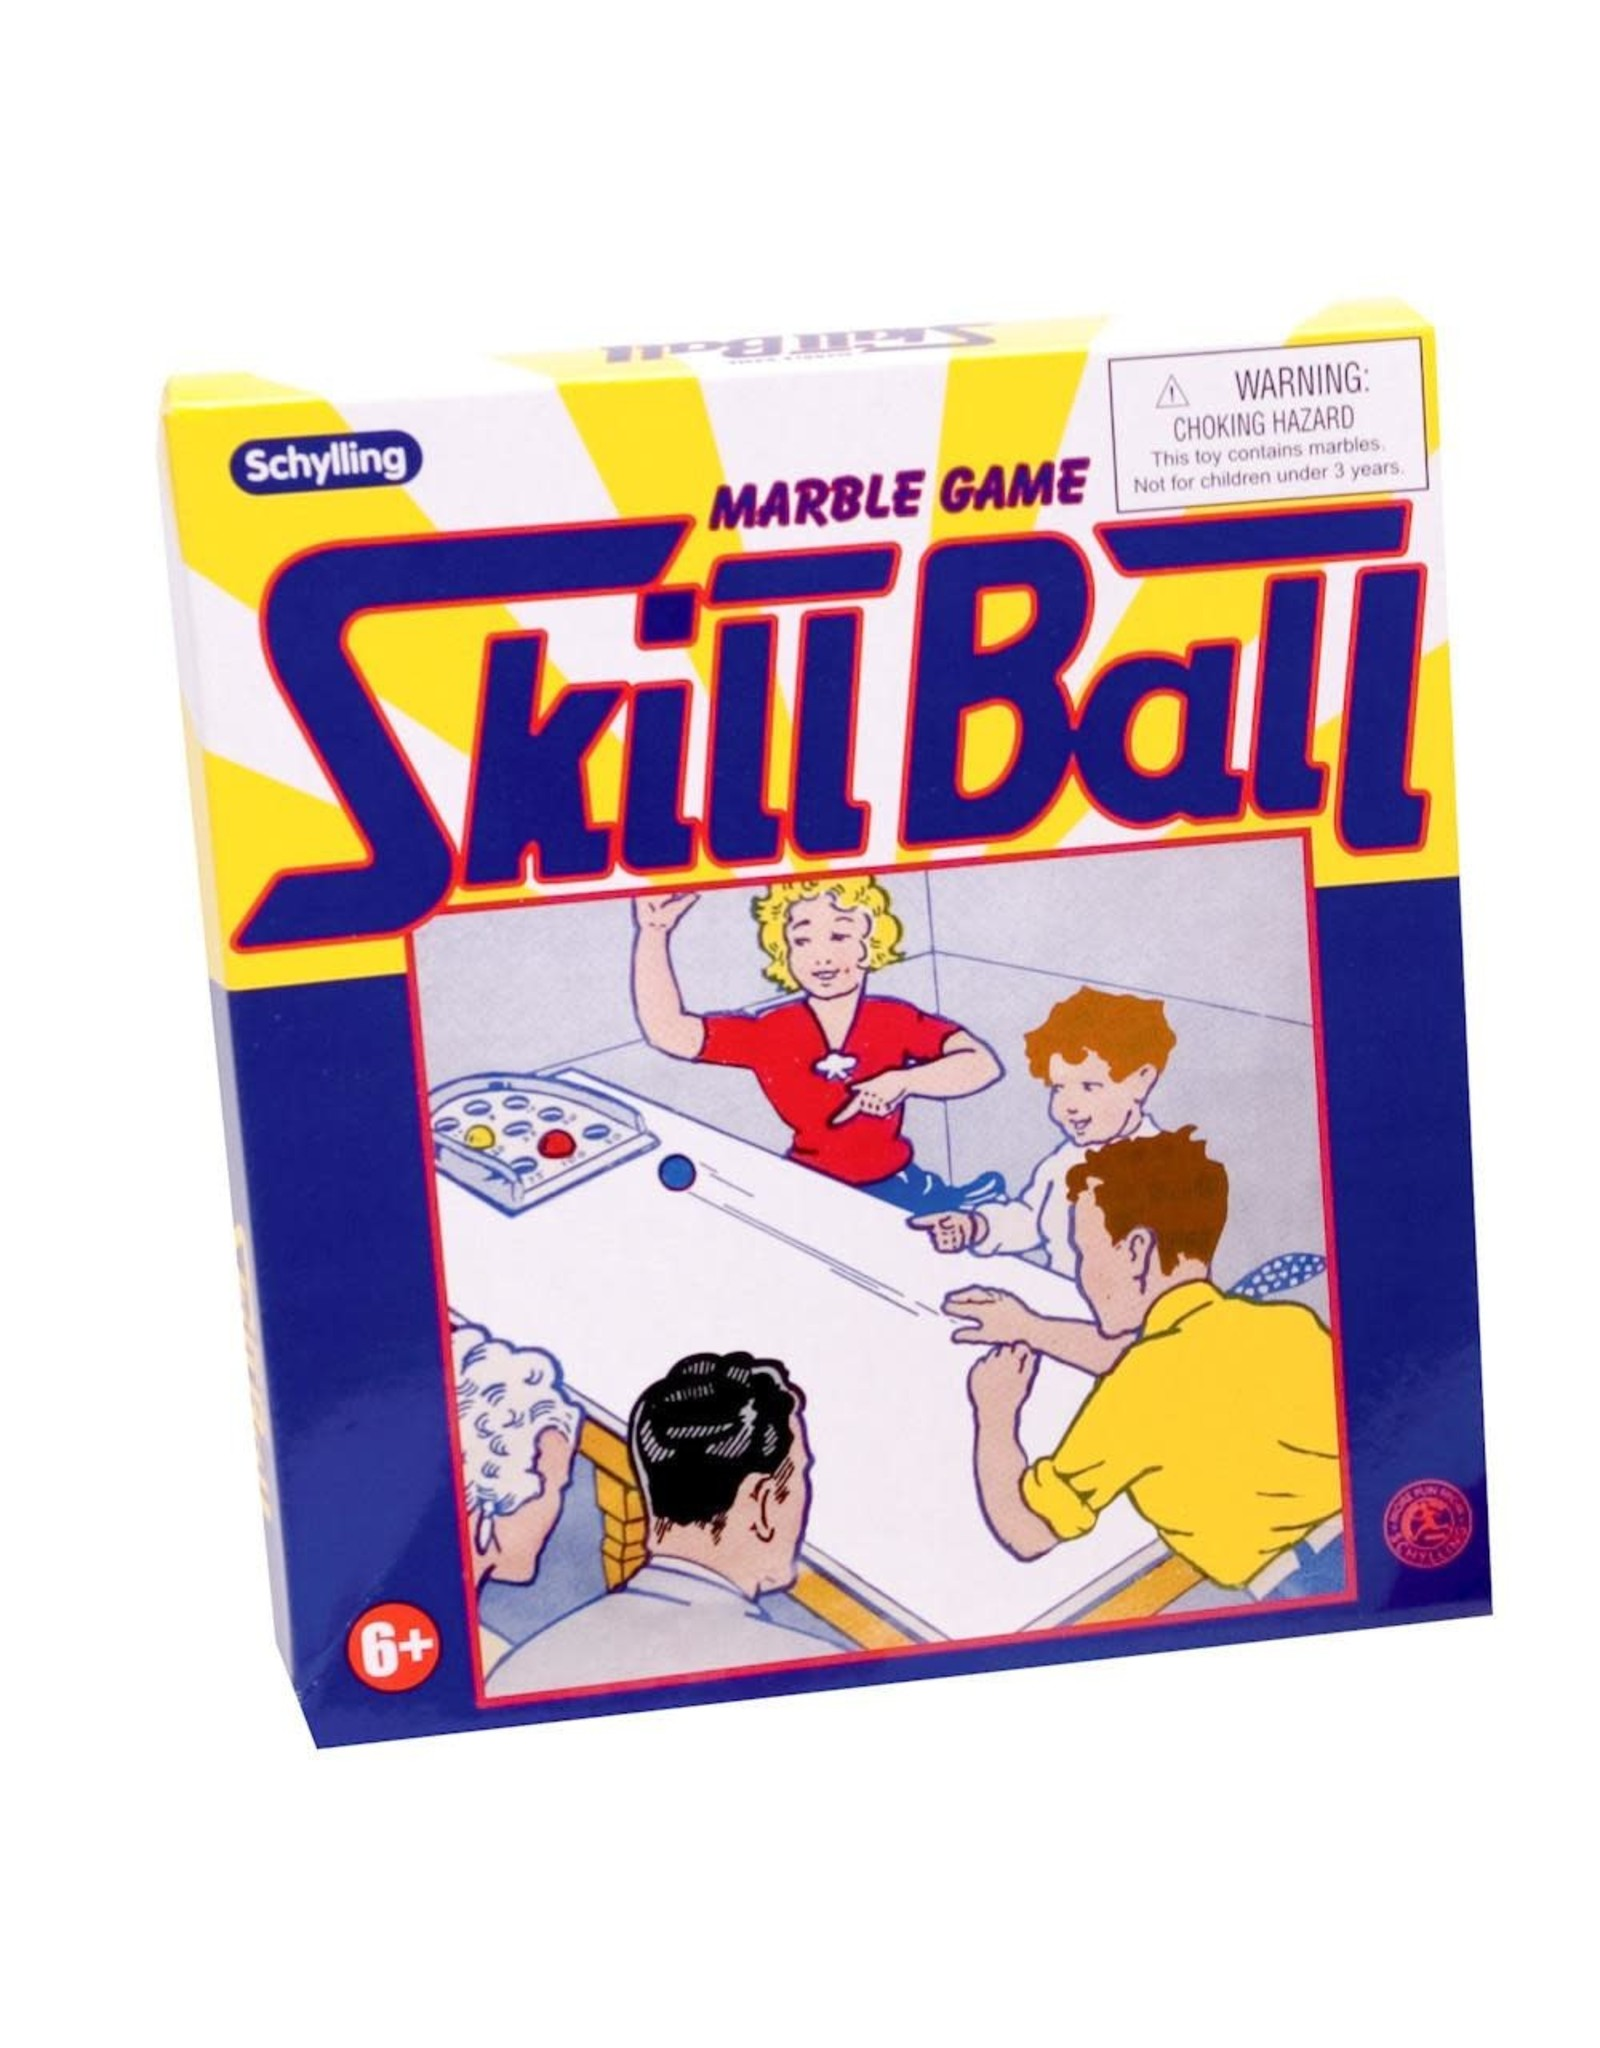 Schylling Skillball Marble Game